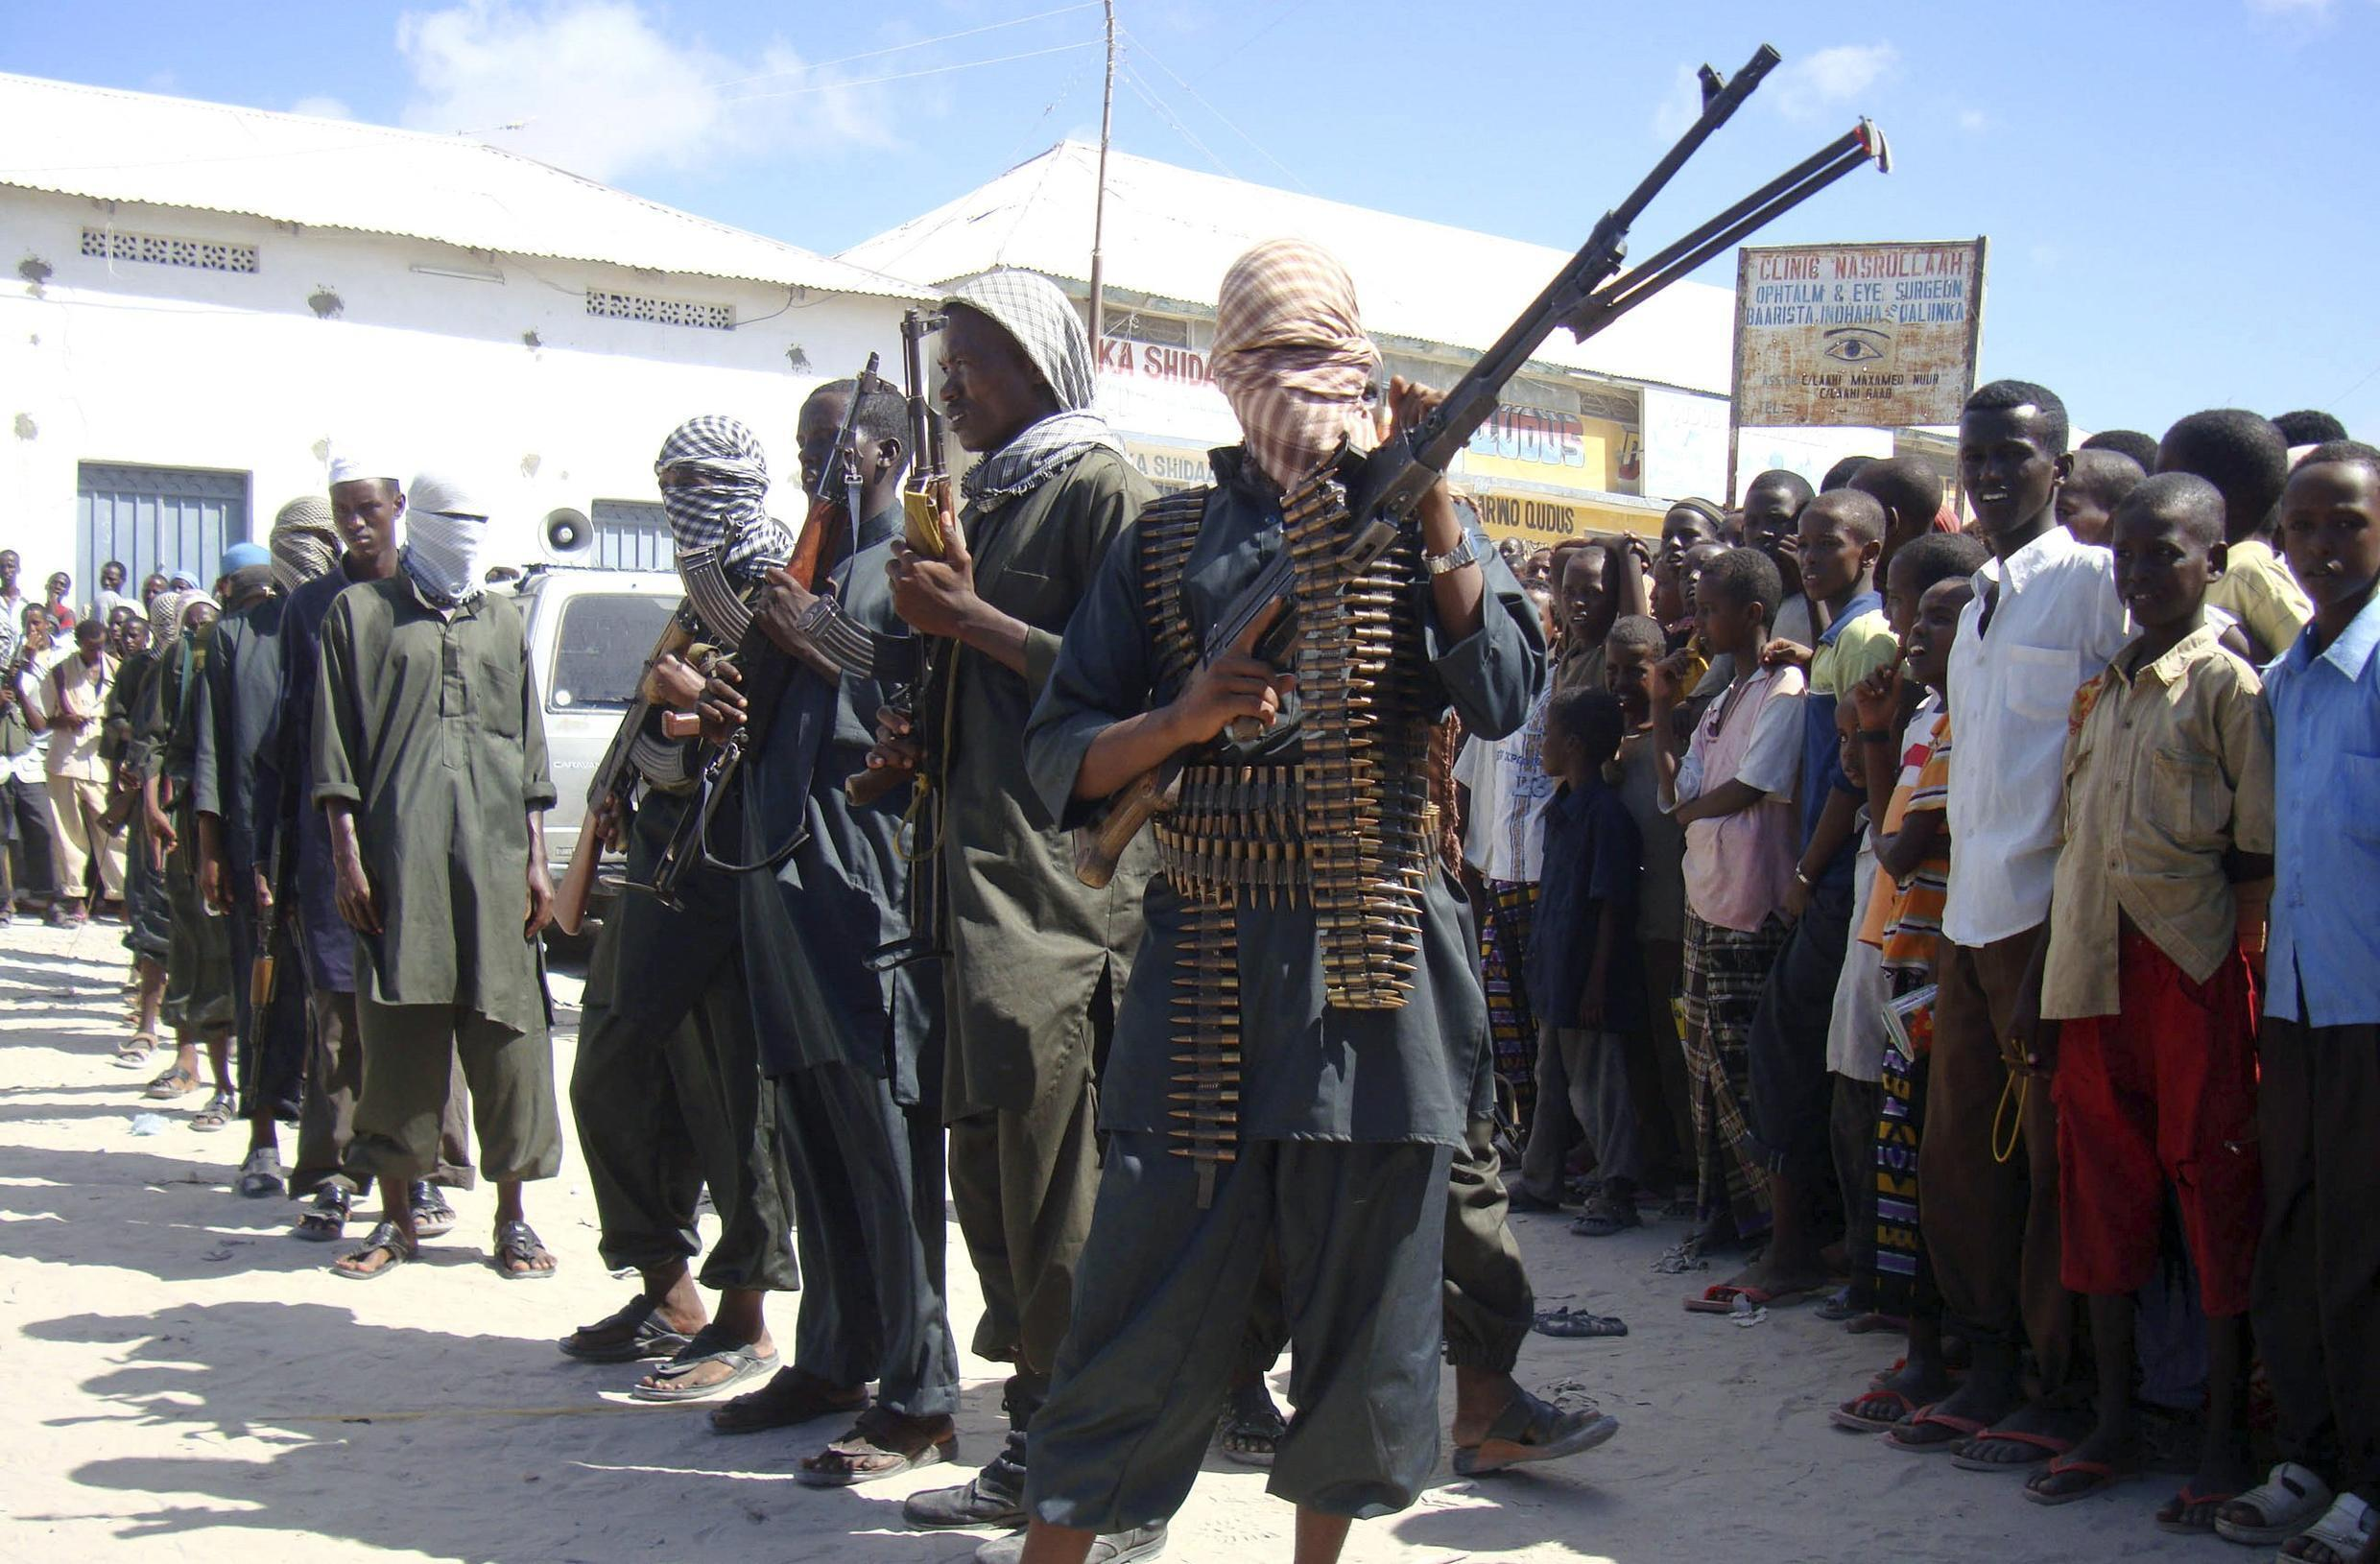 Militants from Hisbul Islam in the streets of Mogadishu, 21 April